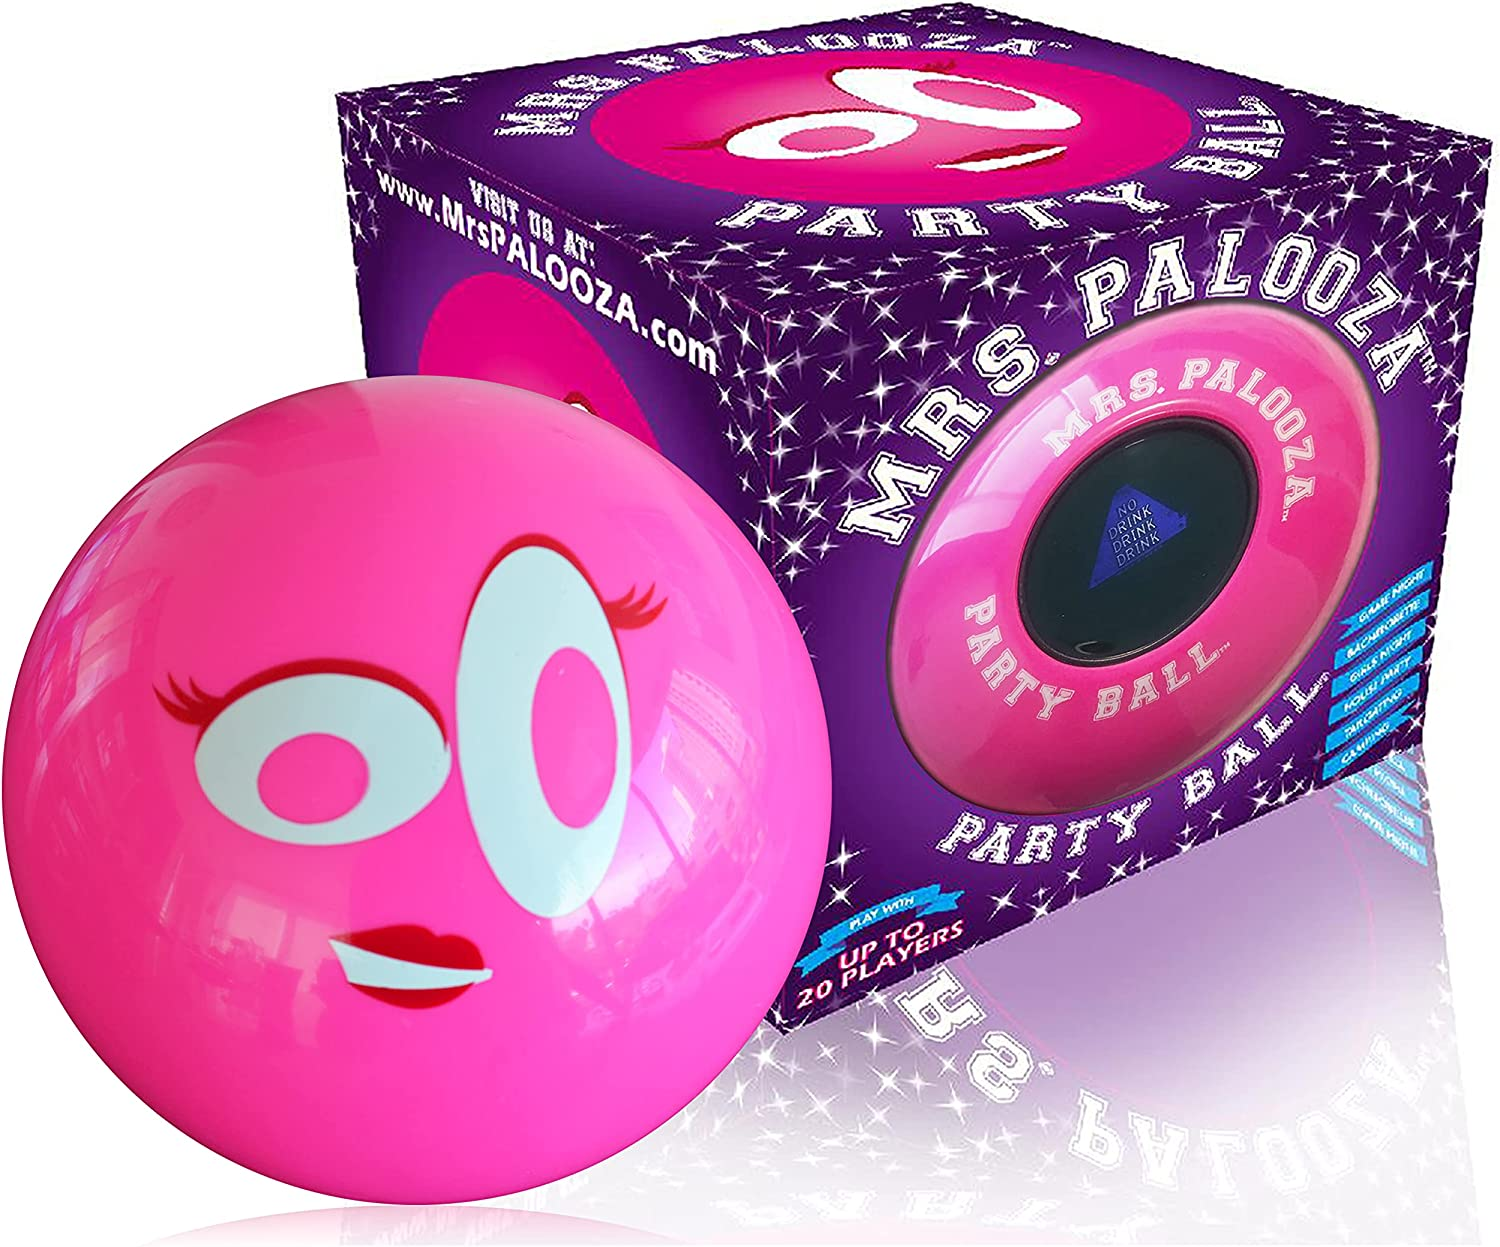 DRINK-A-PALOOZA PARTY BALL Oakland Mall - Fun overseas for Part Adults Drinking Games